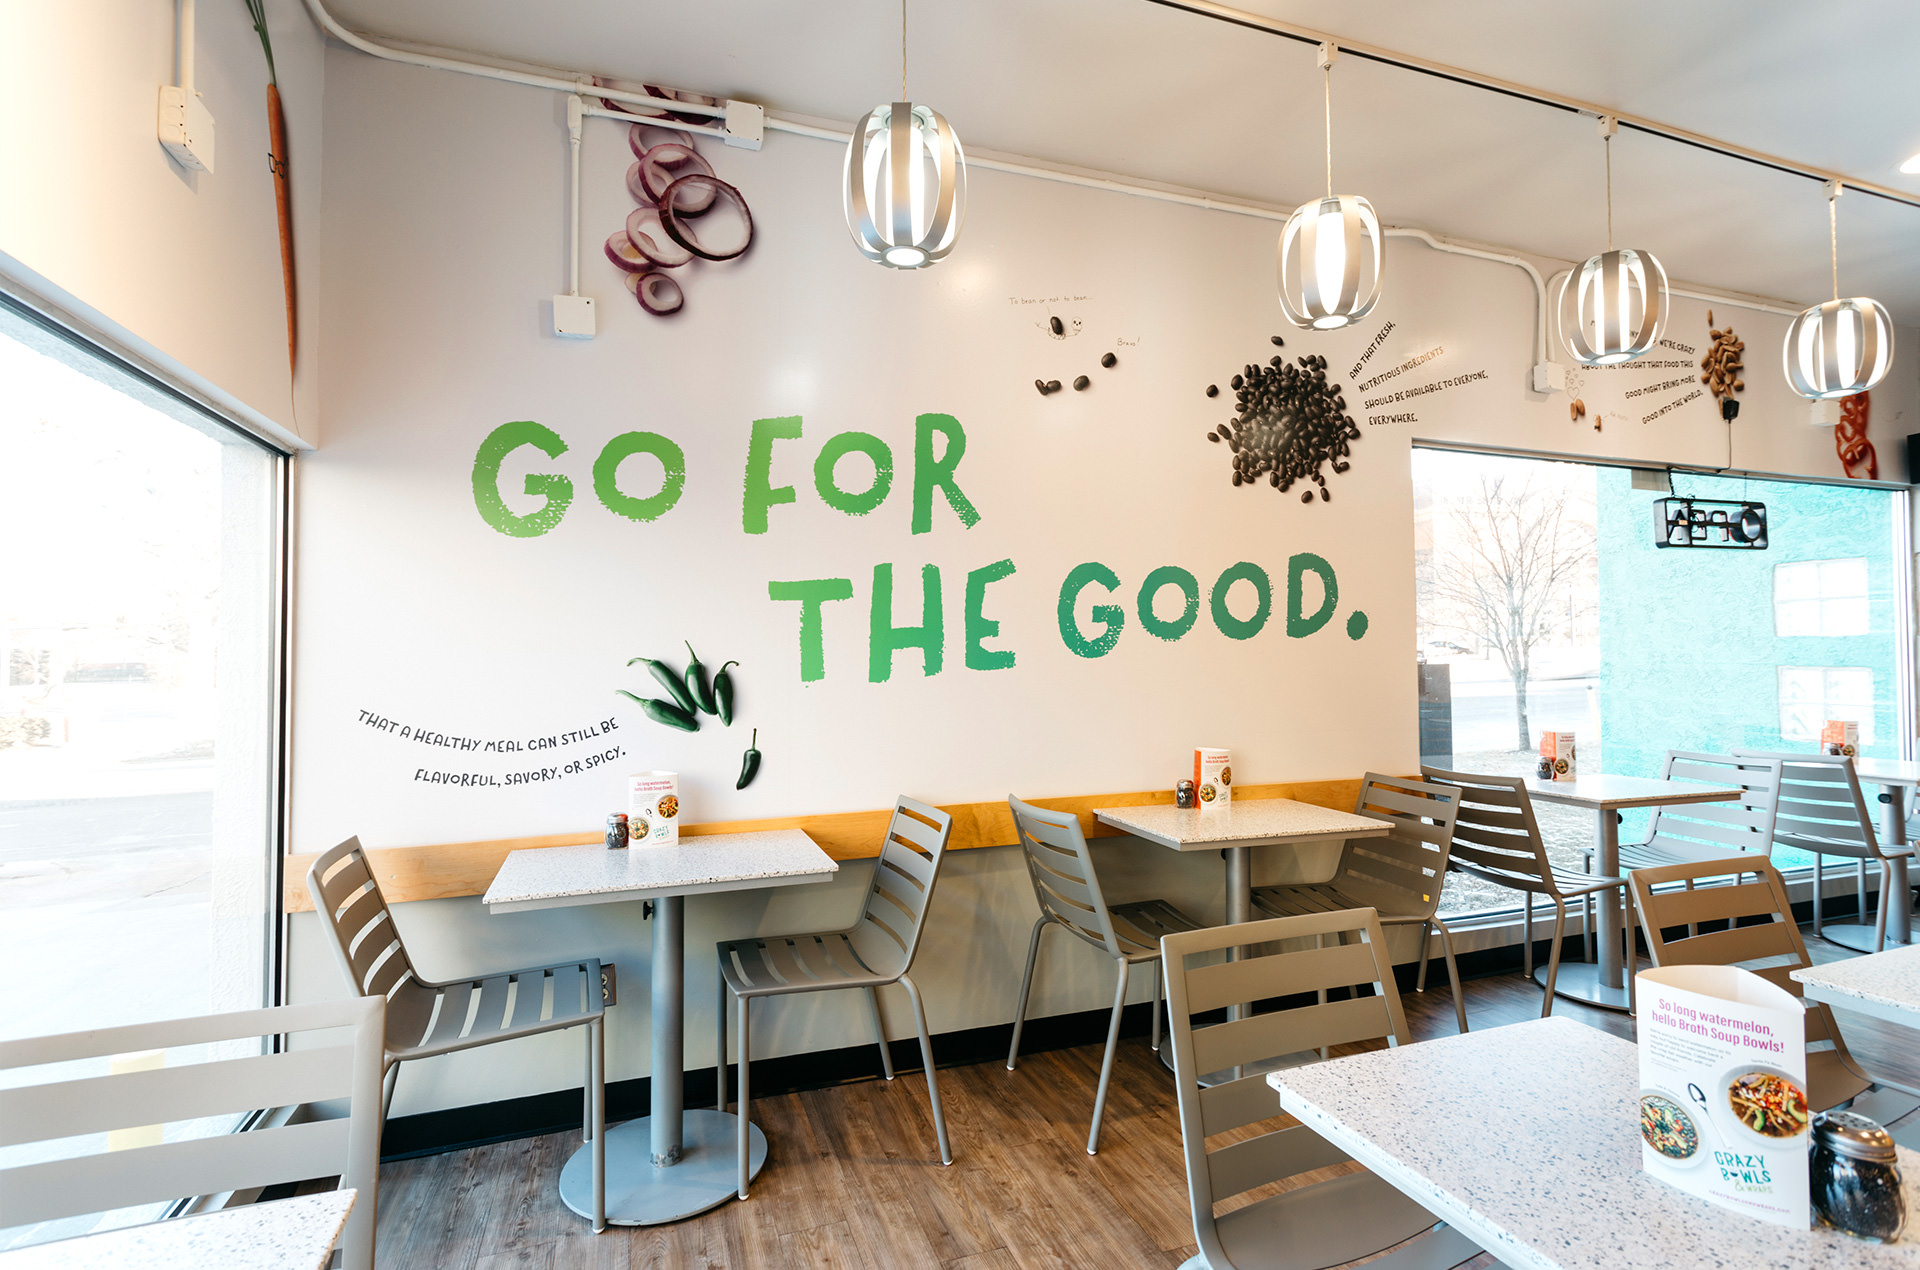 Crazy Bowls and Wraps Interior Branding Design